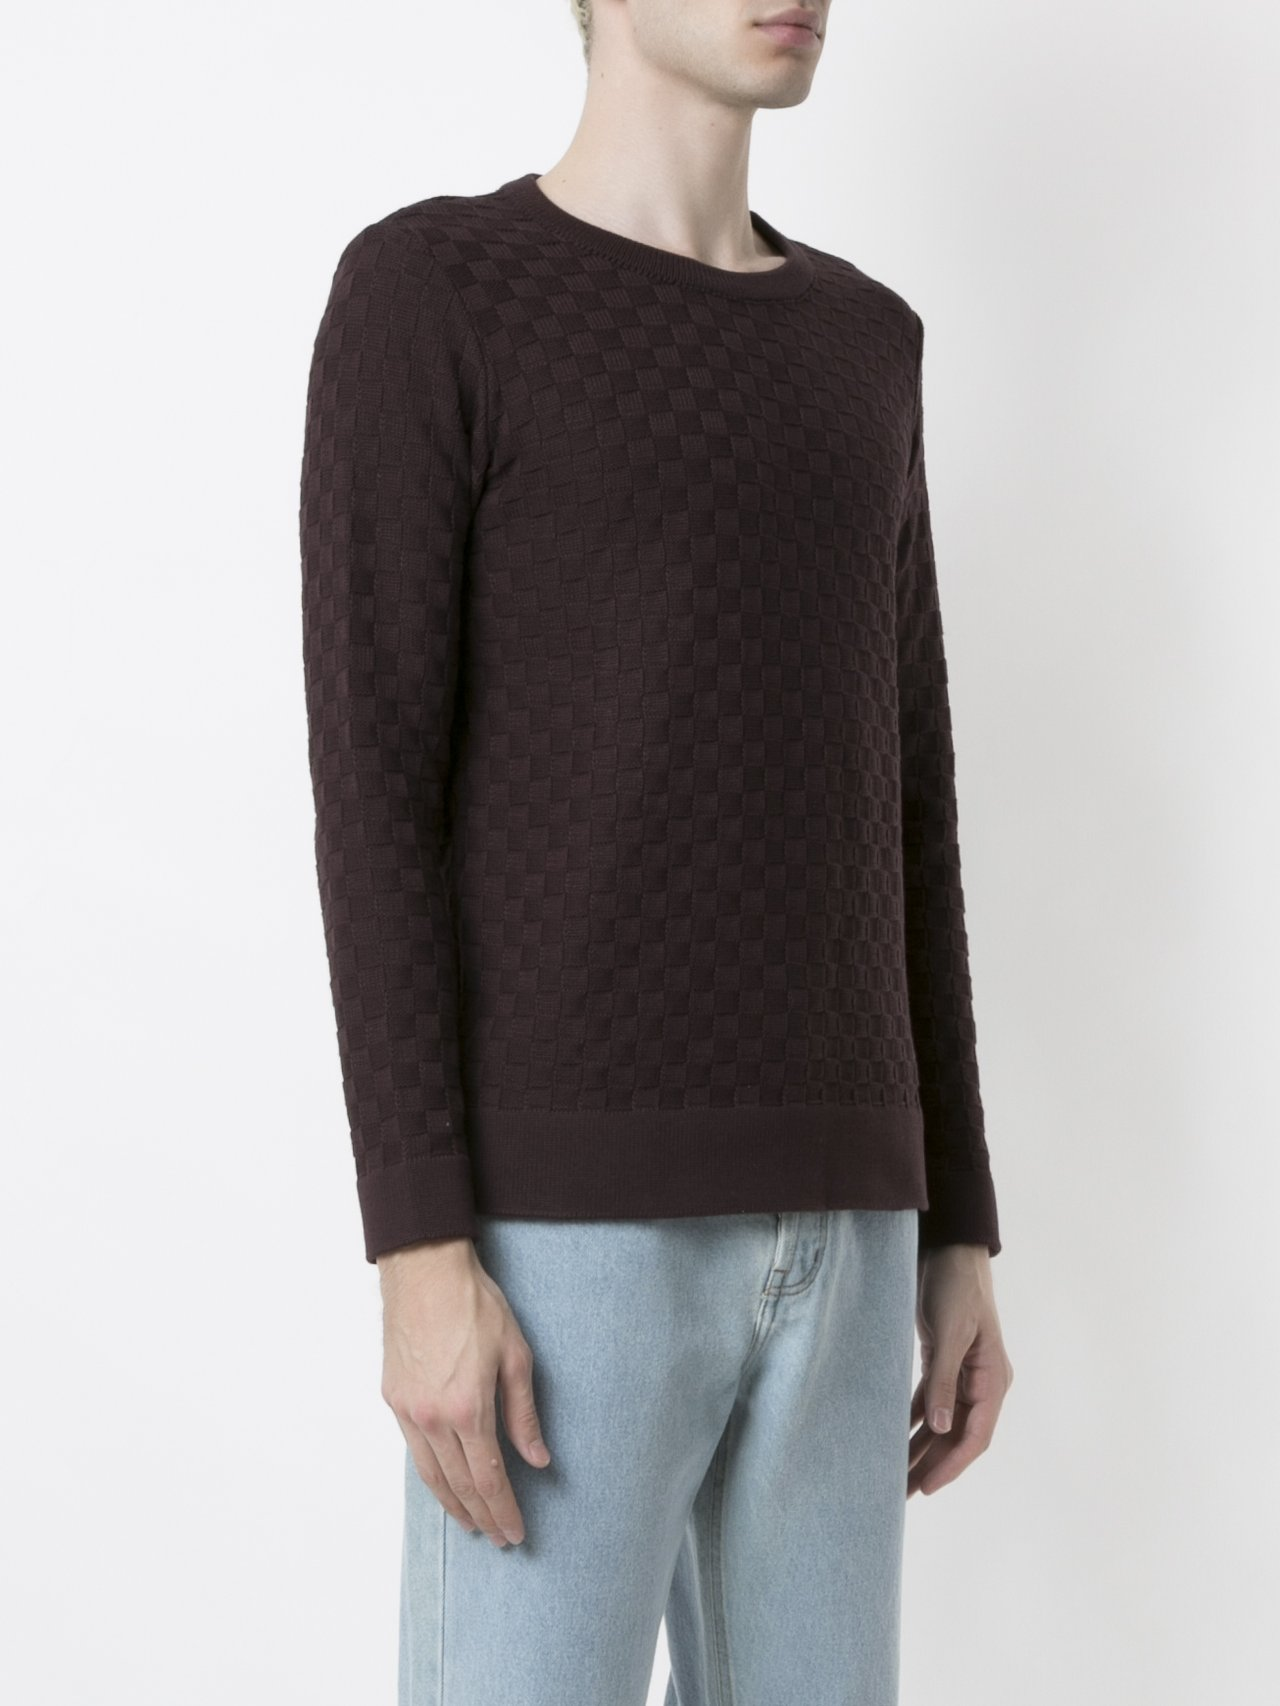 Sweater Quadriculado